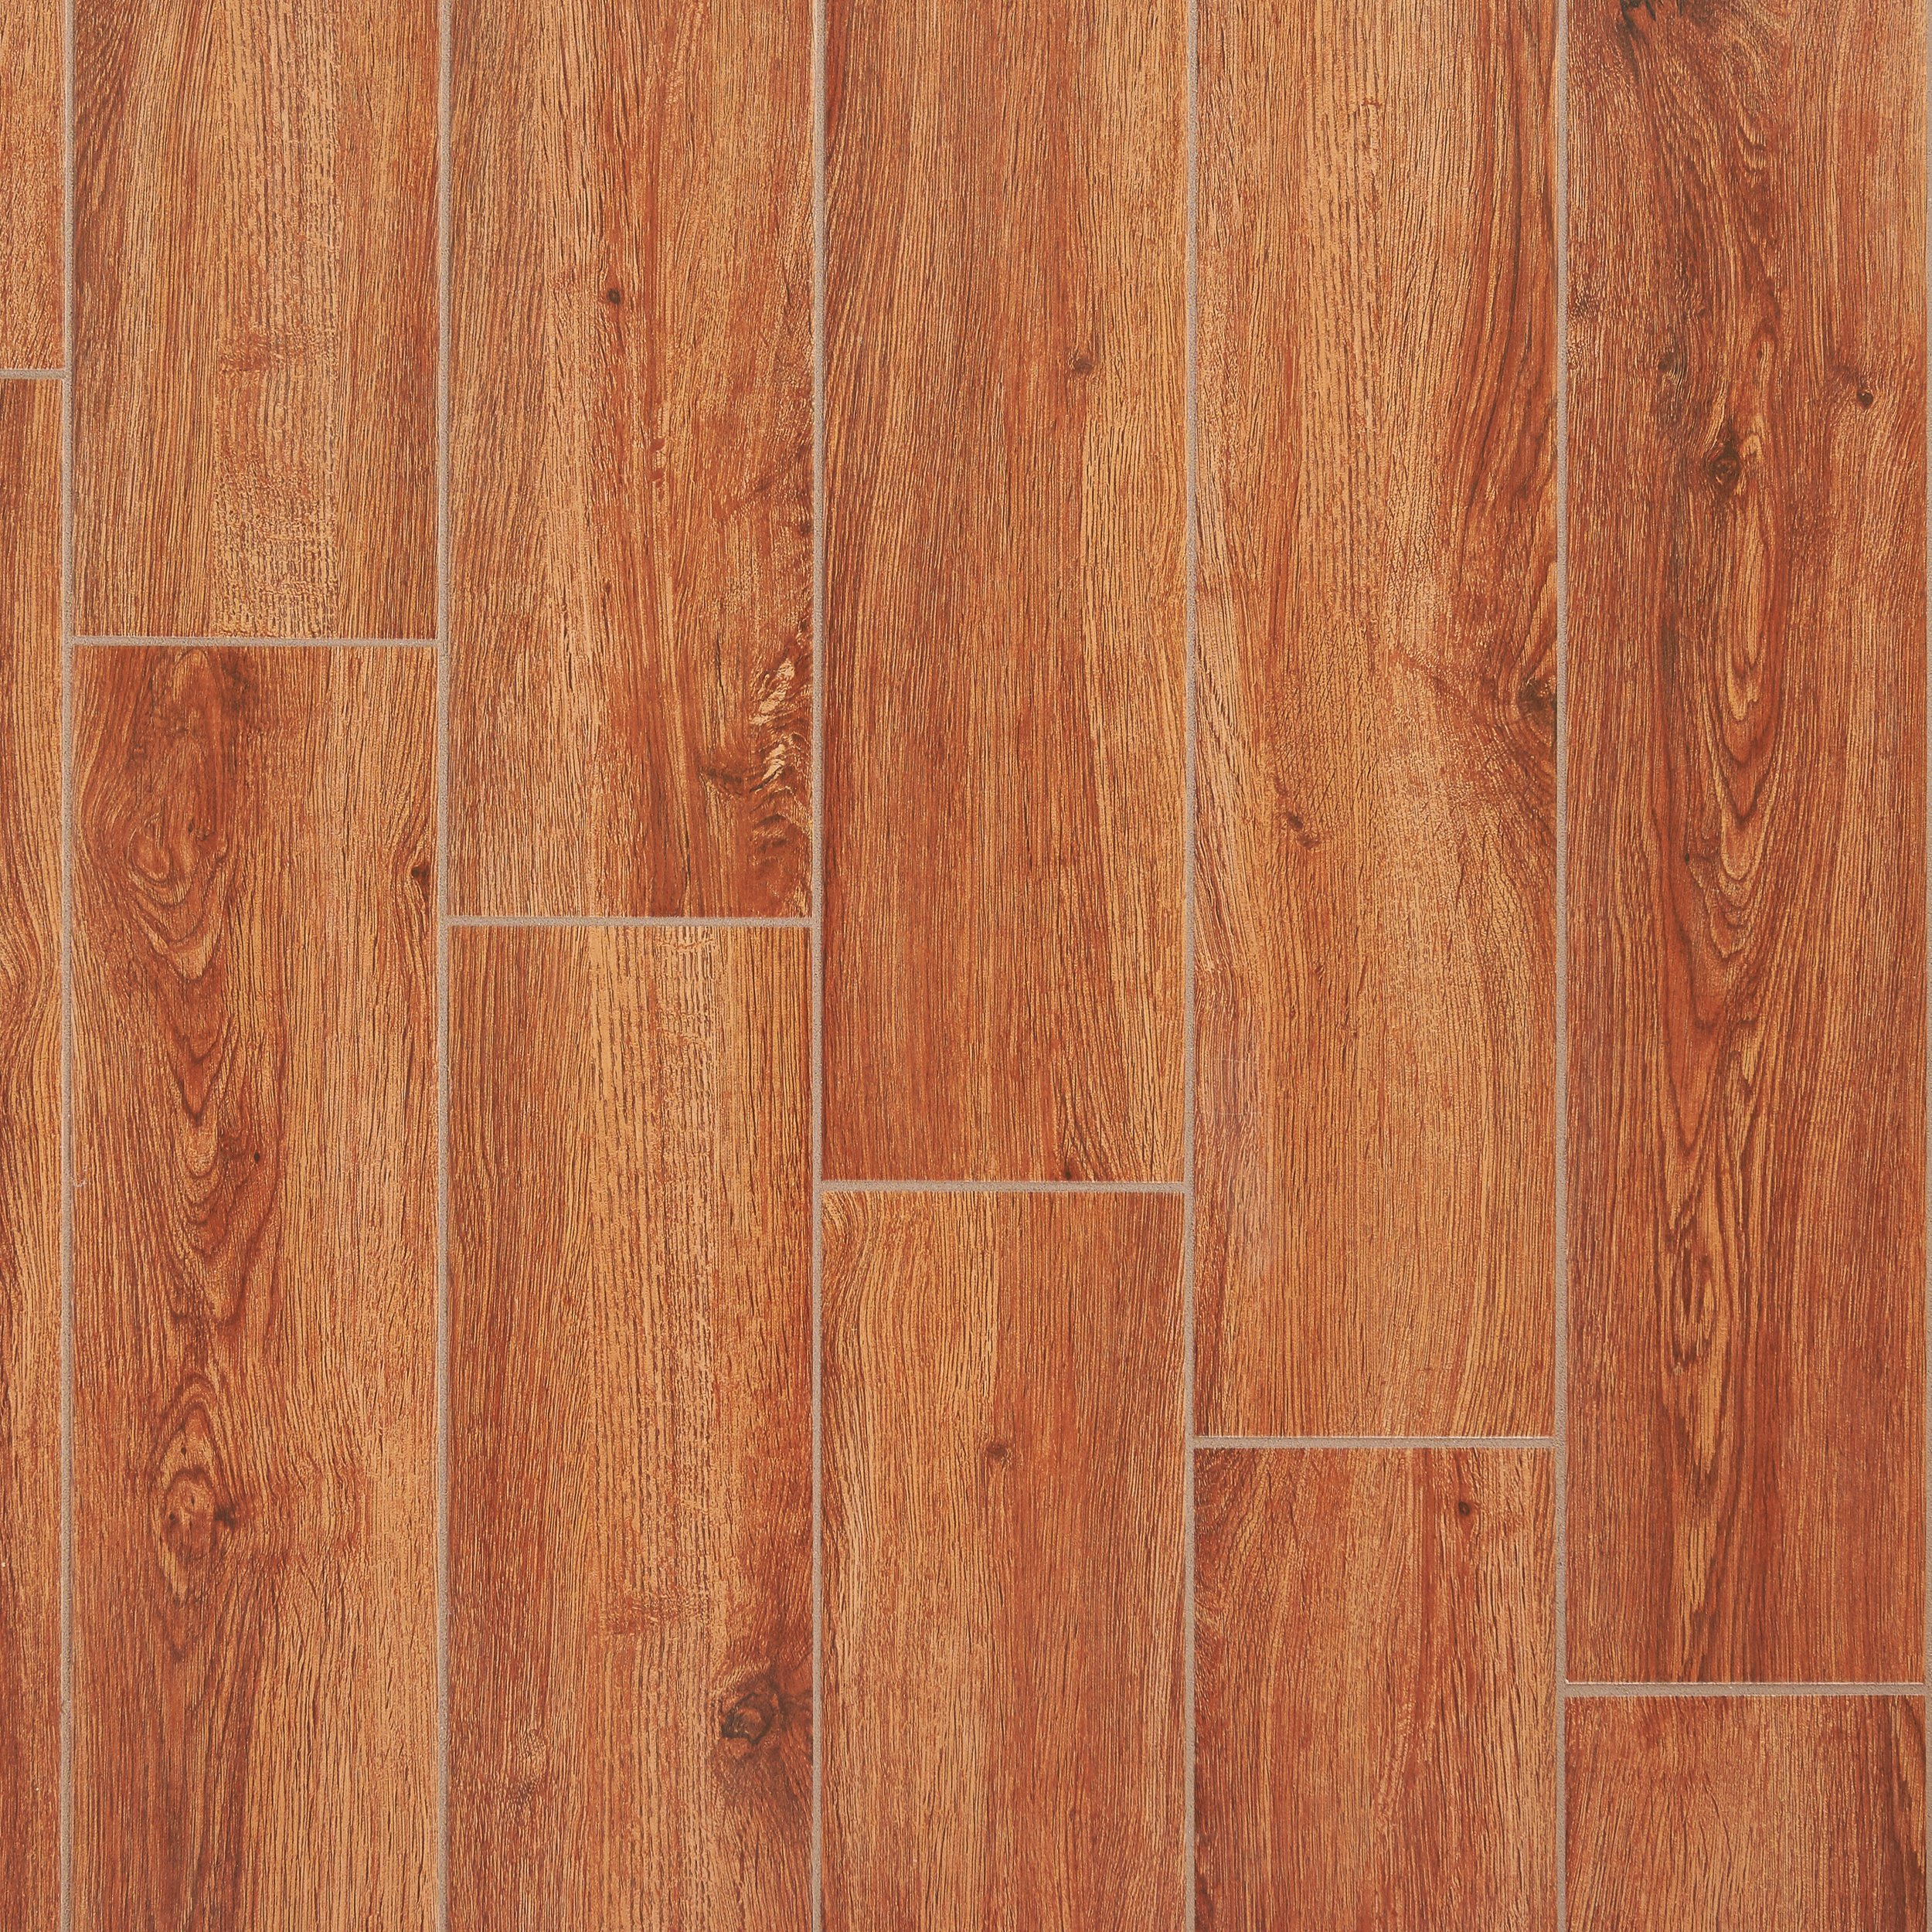 Fulham Red Wood Plank Ceramic Tile 6 X 32 100131457 Floor And